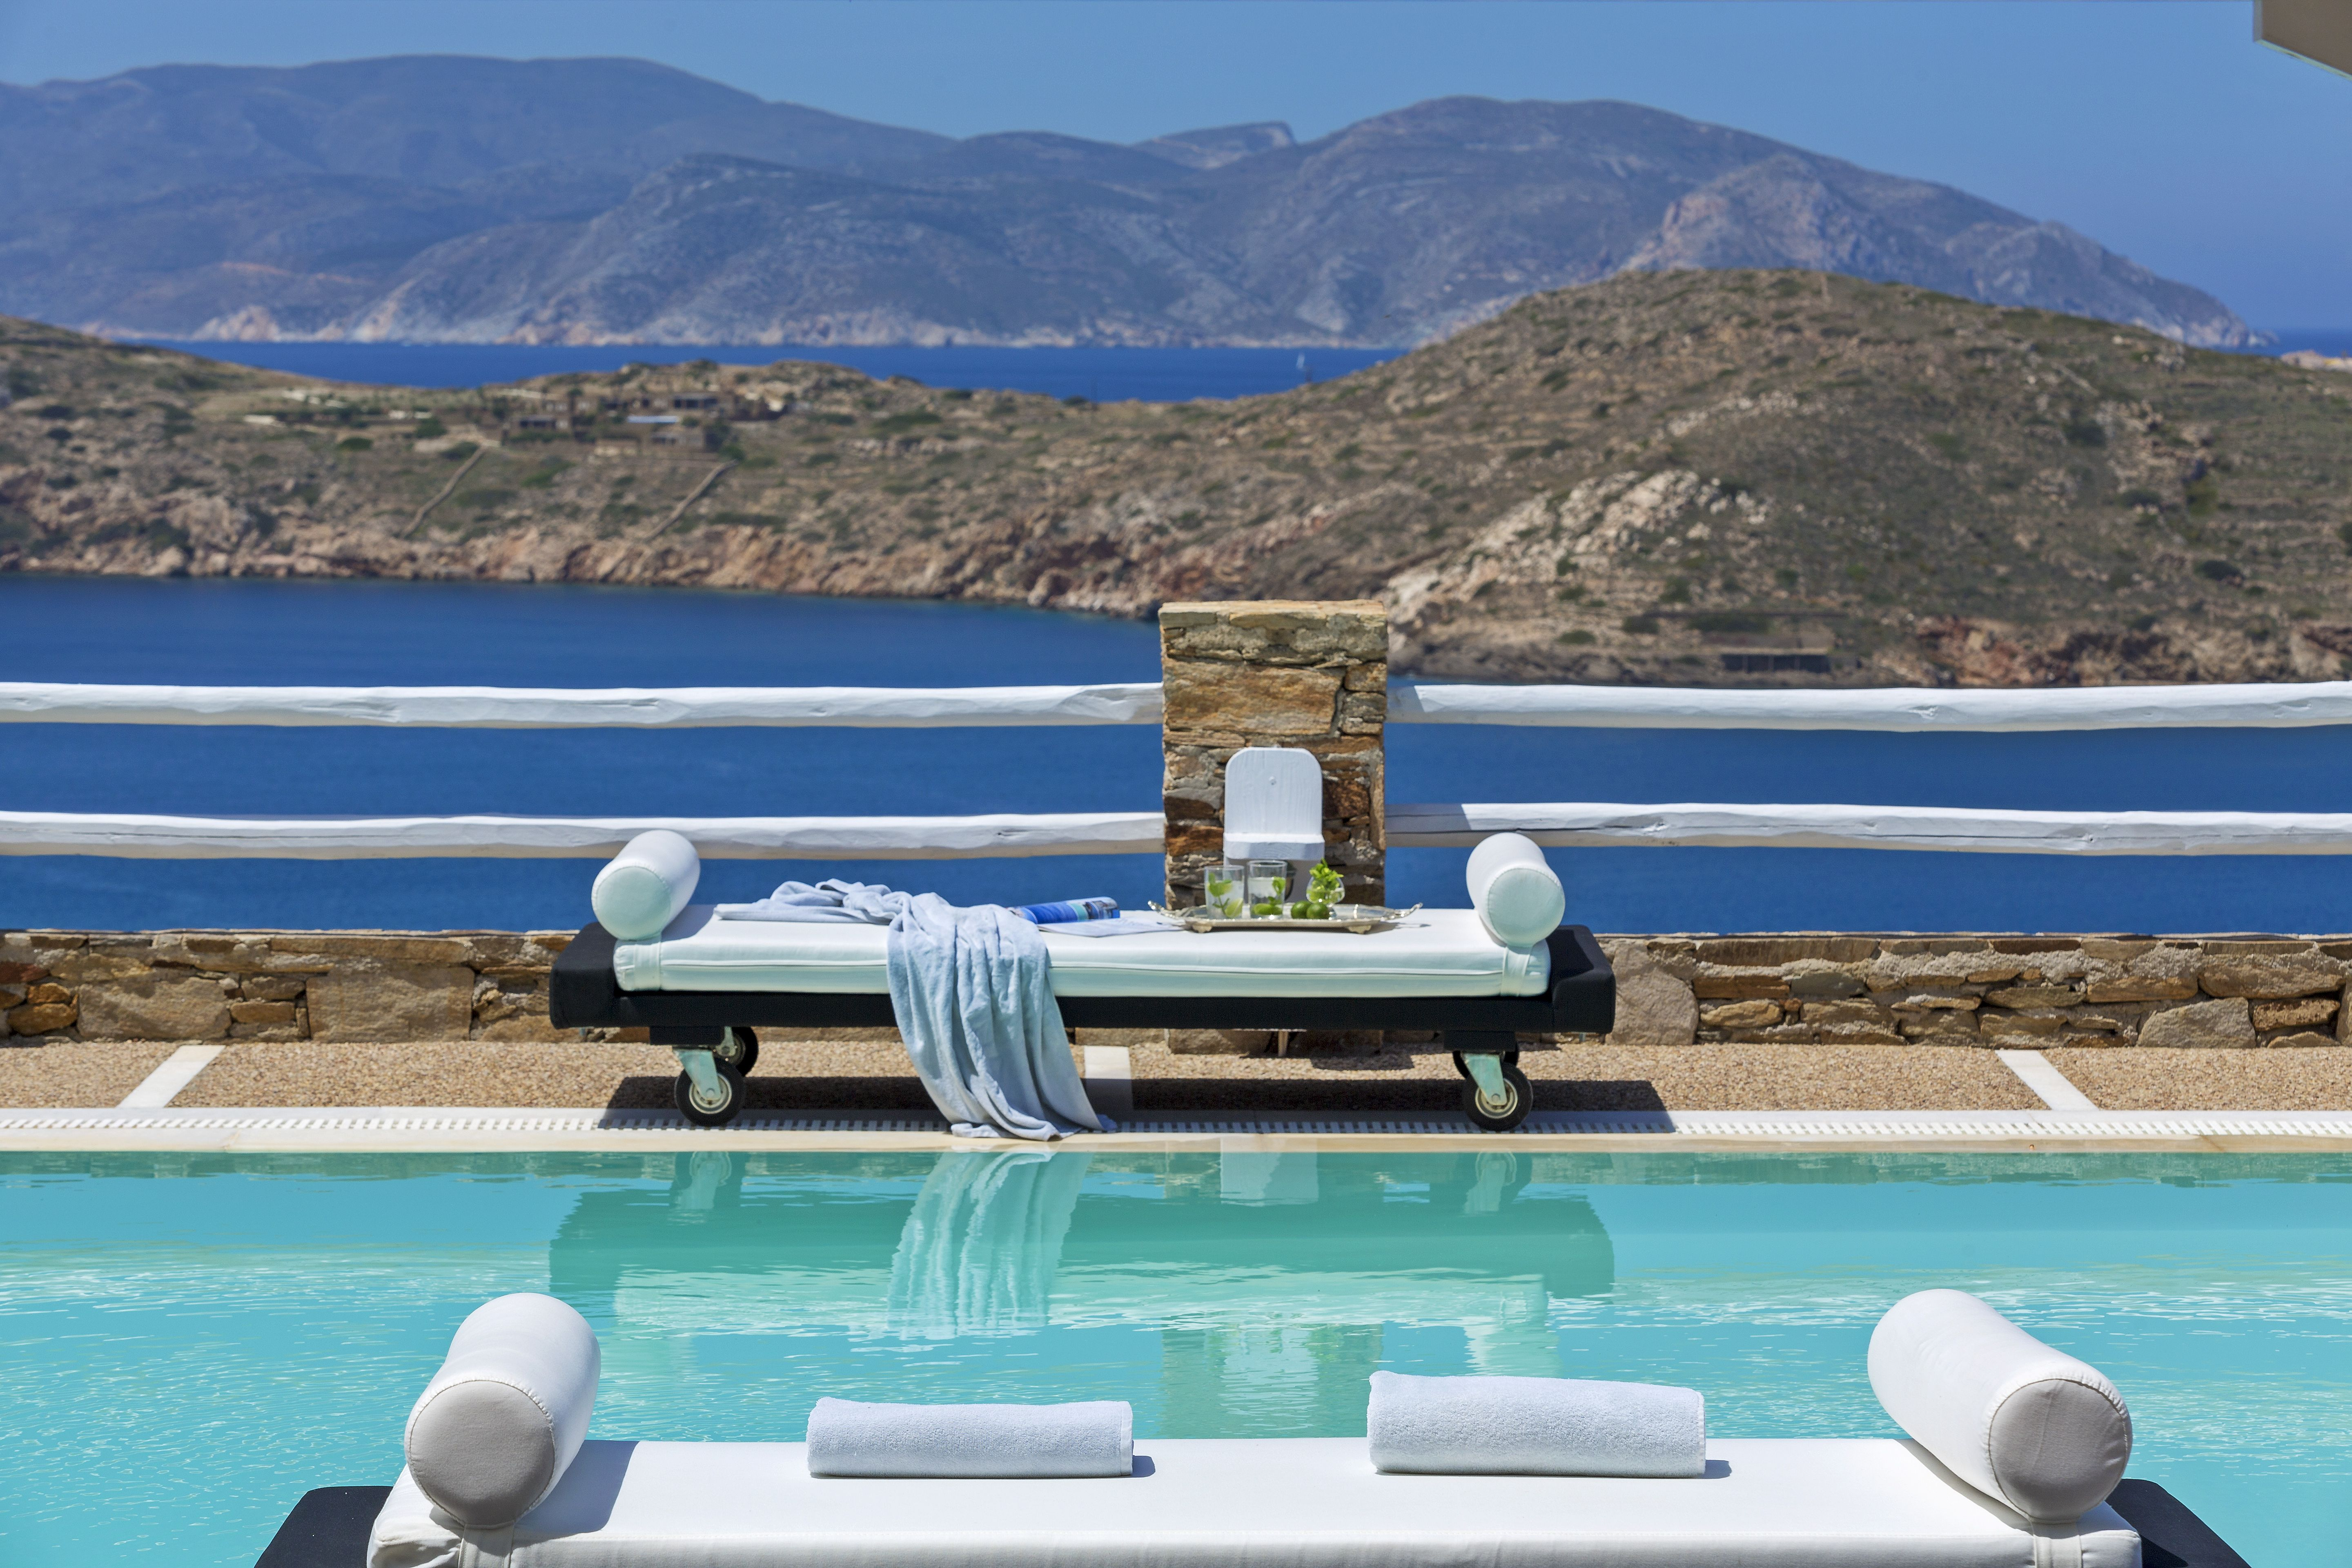 Happy Friday! #SummerInspiration Liostasi Ios Hotel & Spa in Chora, Ios, Greece http://www.slh.com/hotels/liostasi-ios-hotel-and-spa/